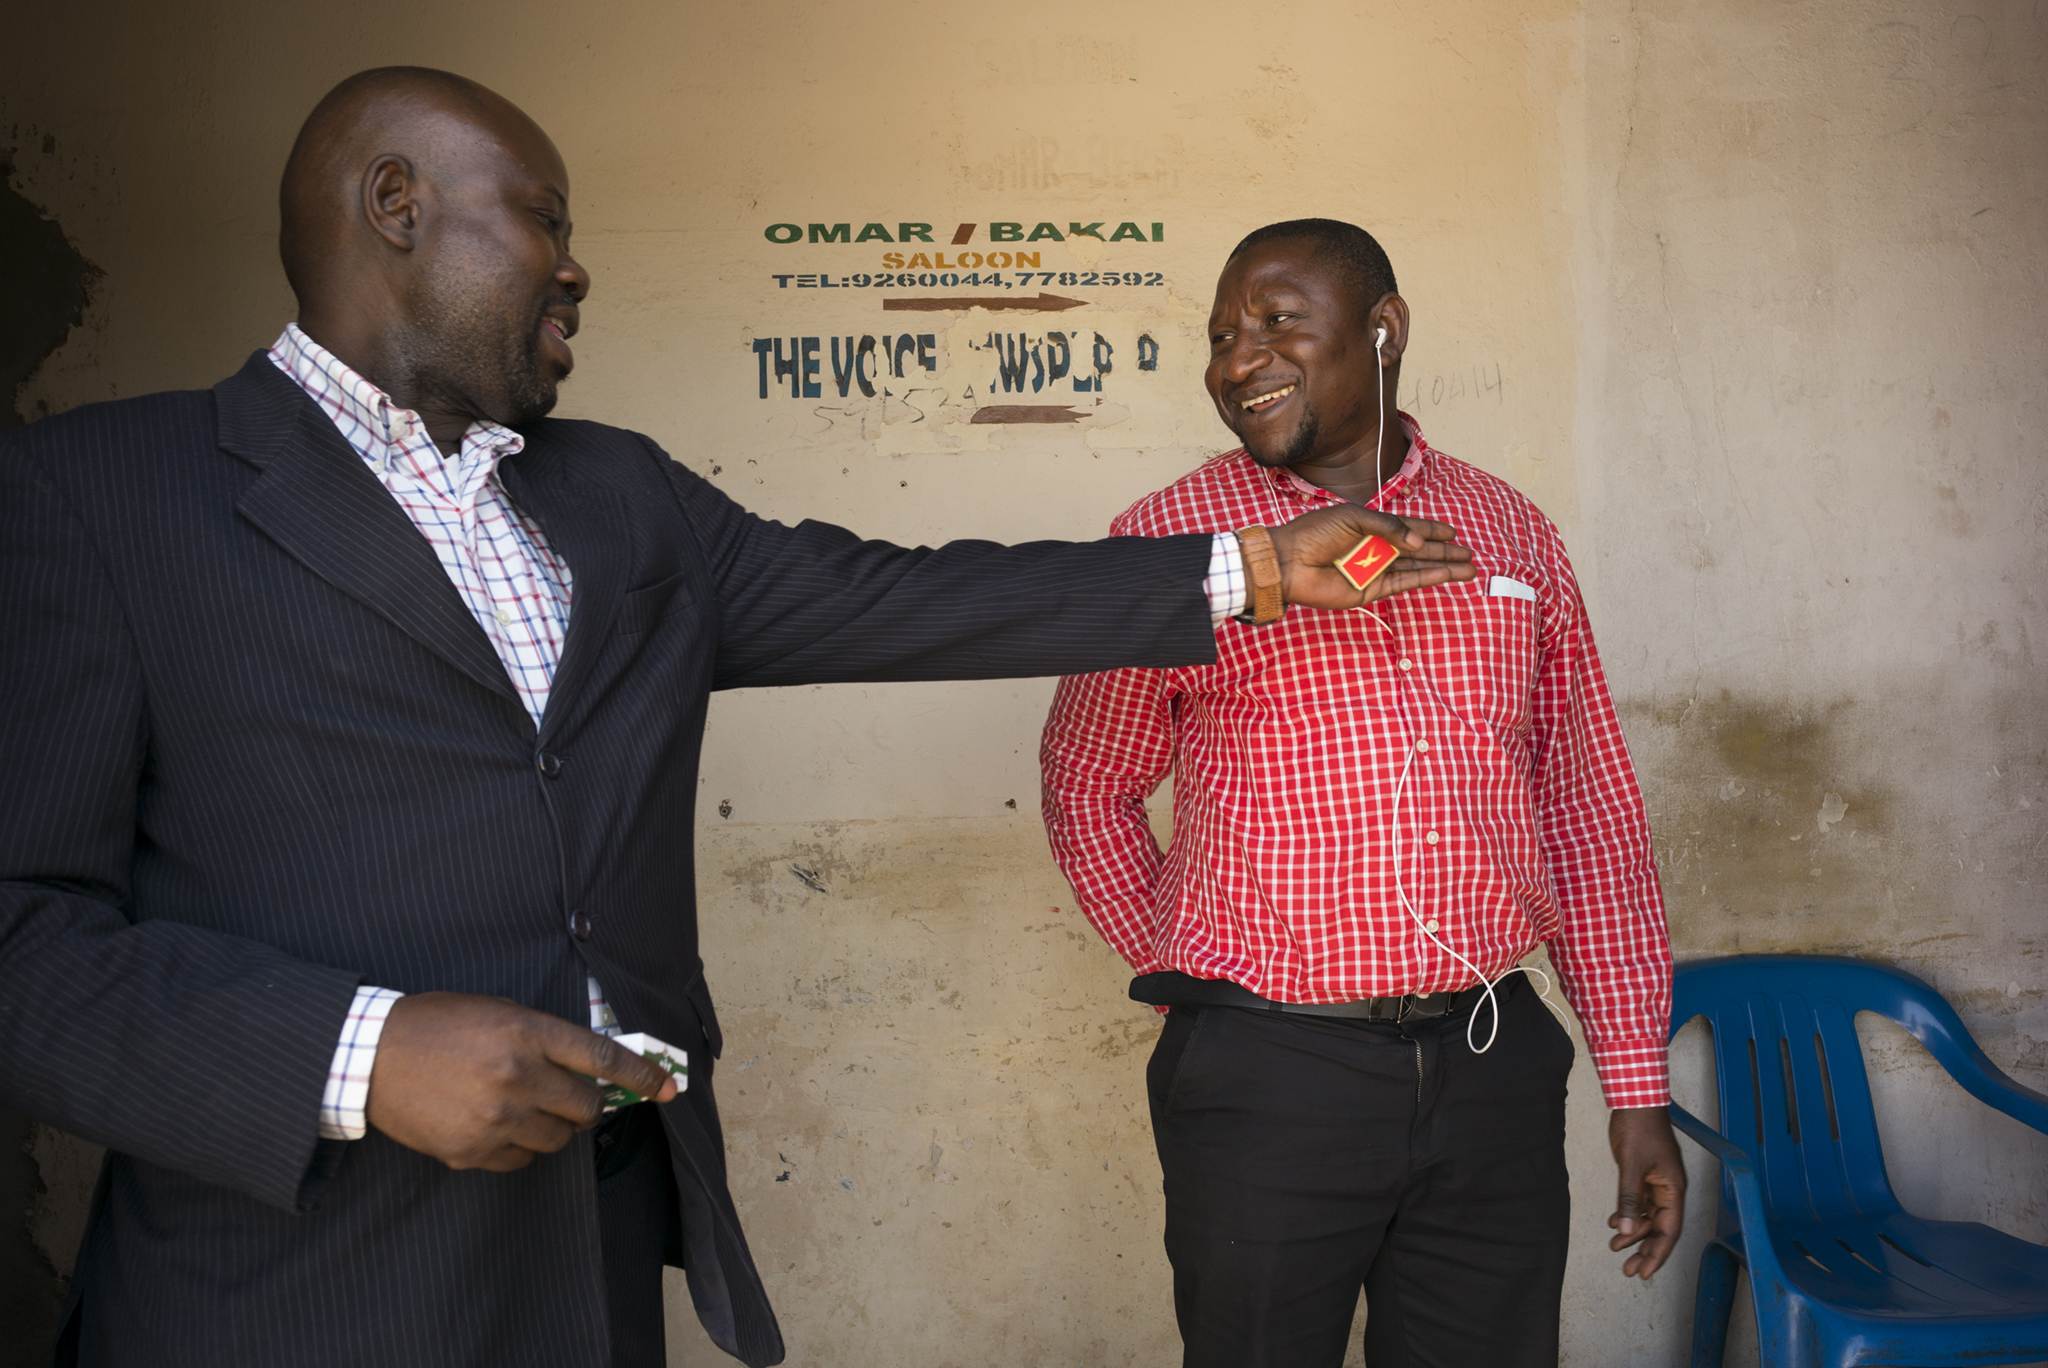 """The Voice"" office. Serrekunda, Gambia. January 2018